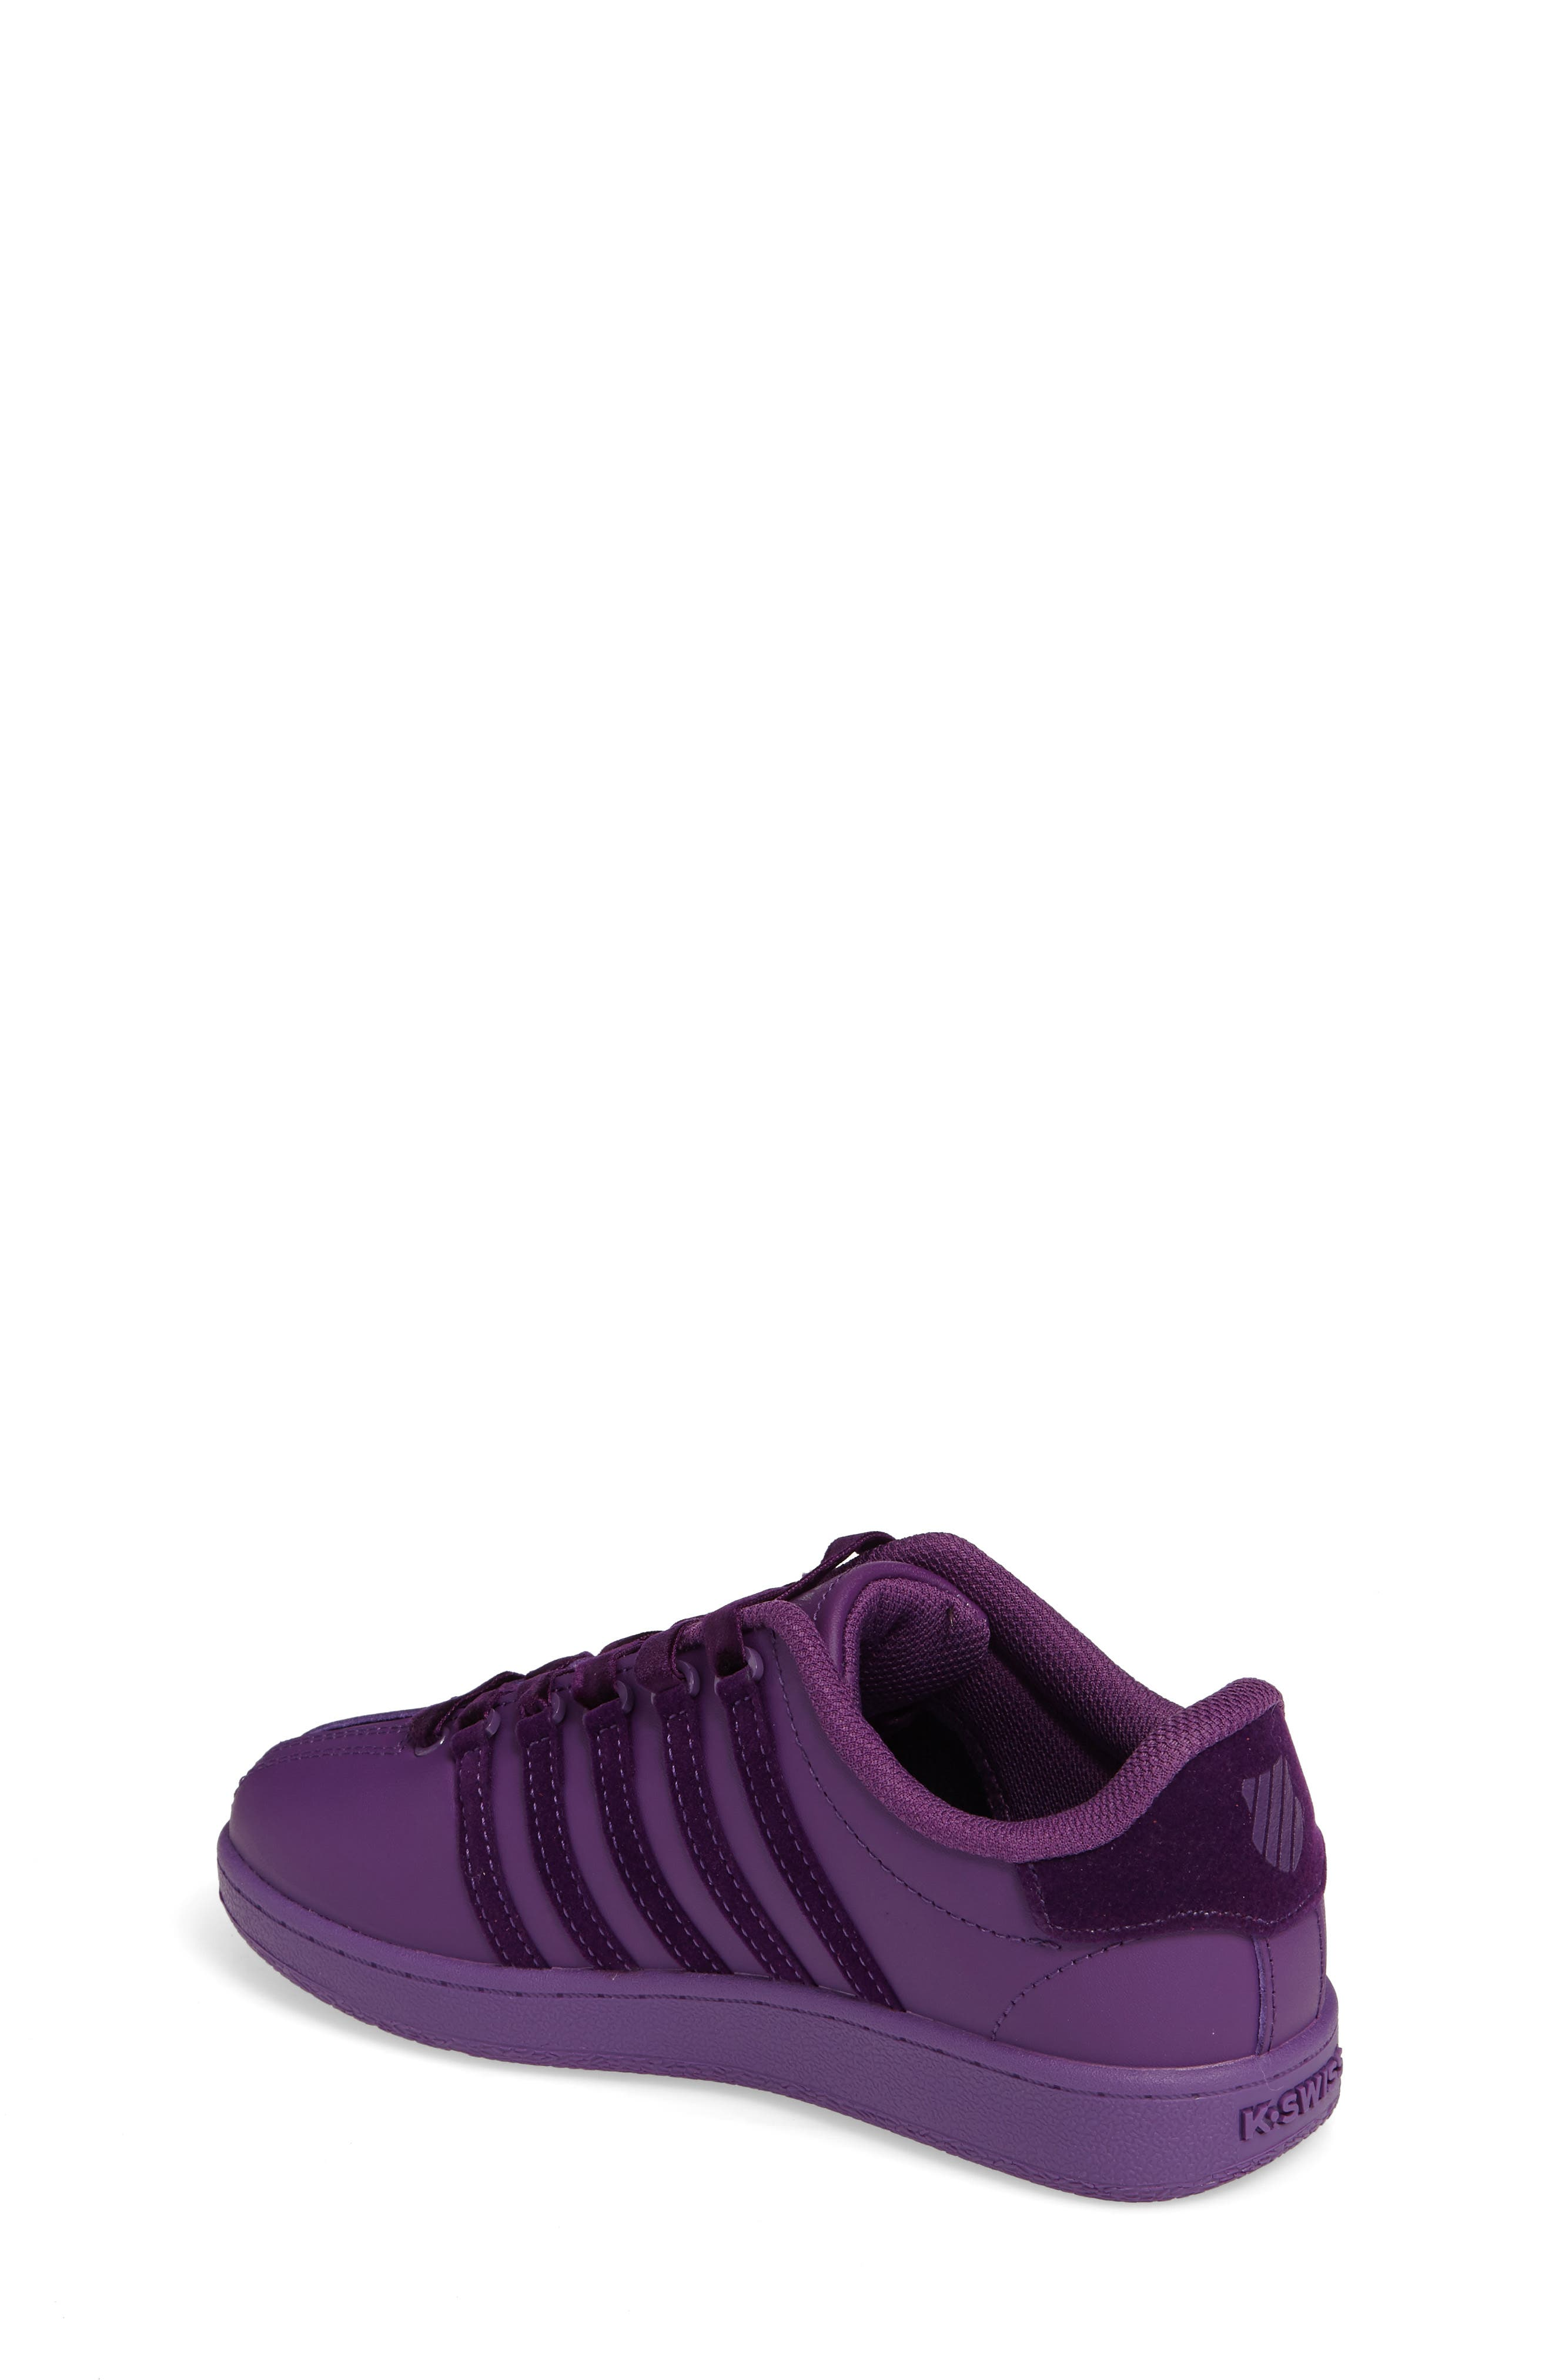 Classic VN Sneaker,                             Alternate thumbnail 2, color,                             Majesty